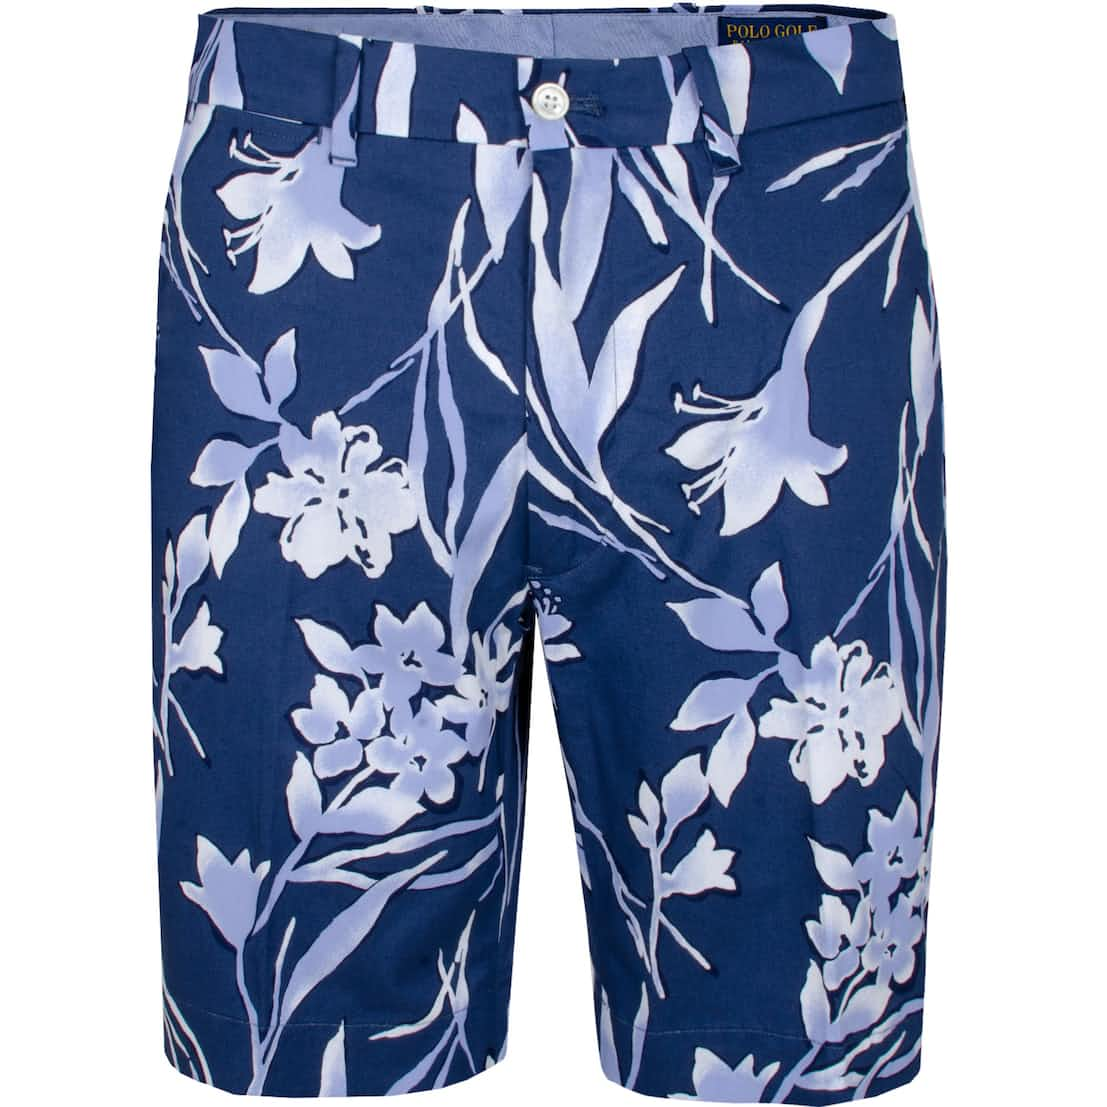 Cotton Stretch Shorts Ink Floral - SS20